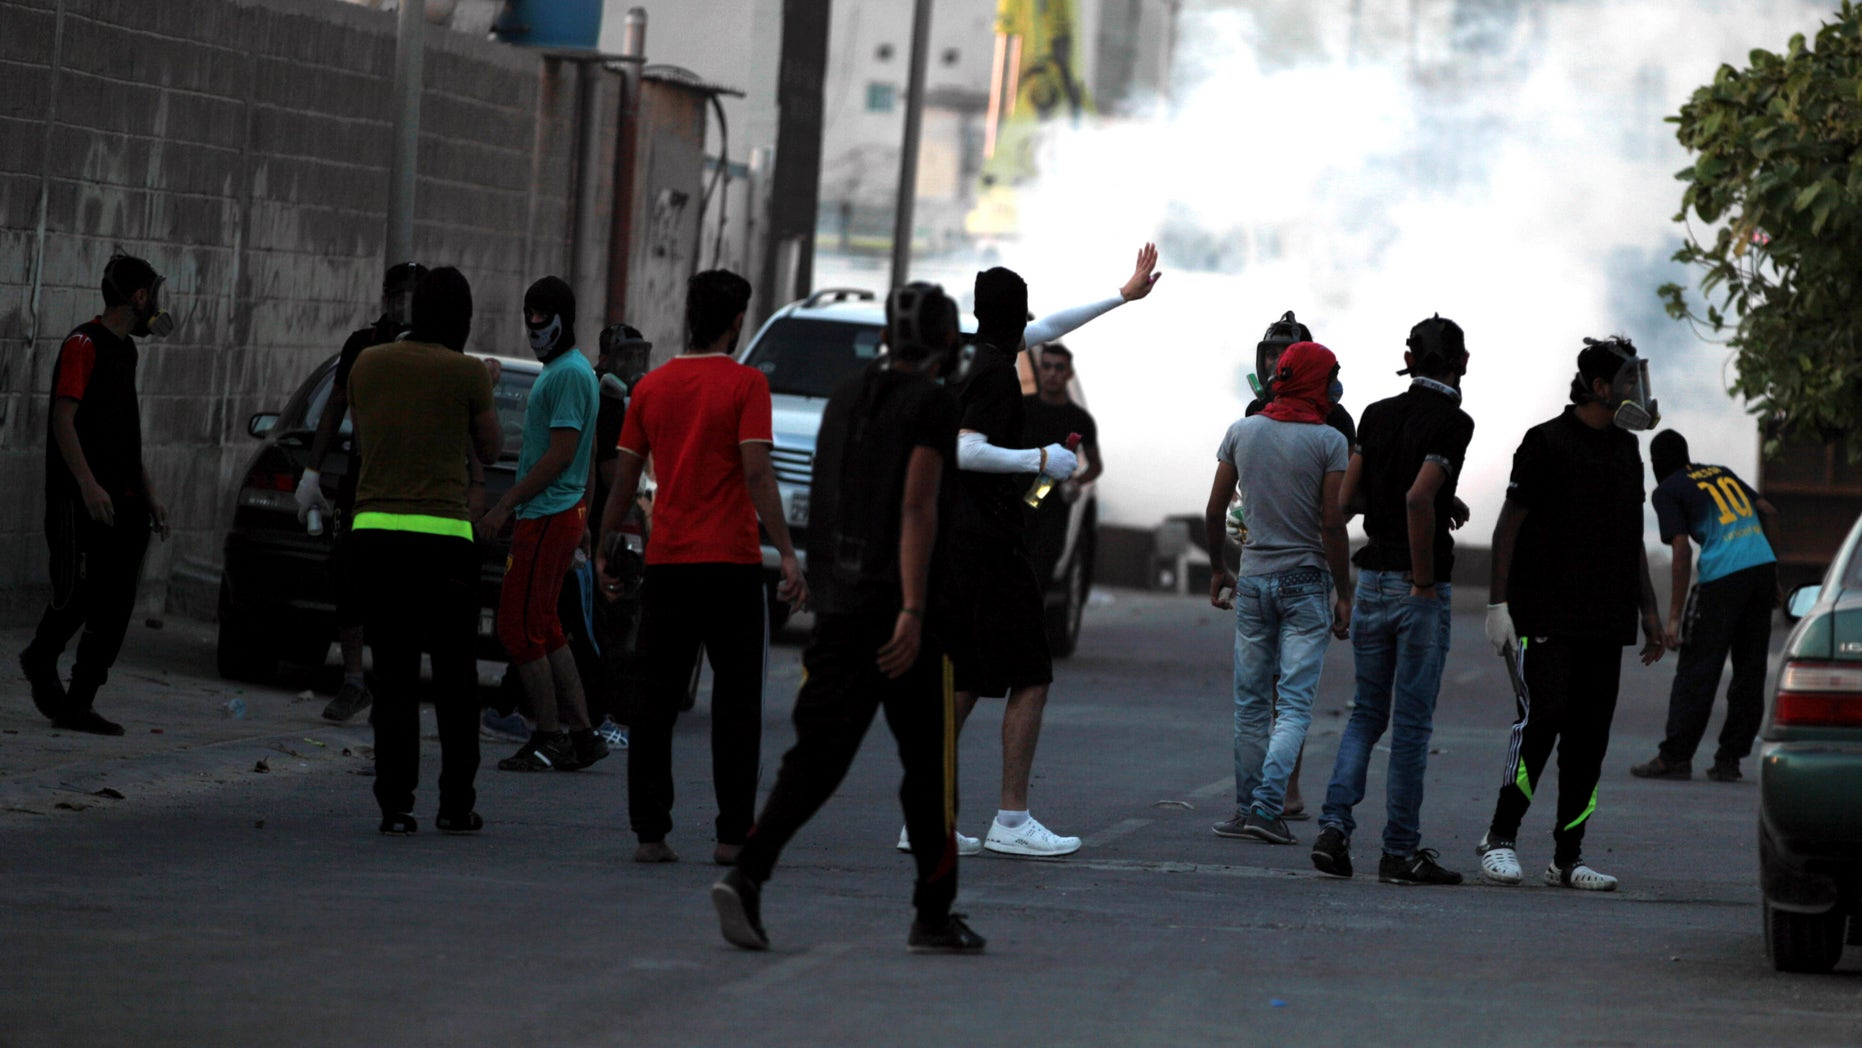 Bahraini youths carrying petrol bombs and stones confront riot police firing tear gas, stun grenades and shotguns after the funeral for Hussain Mahdi Habib, 20, in Sitra, Bahrain, on Sunday, Oct. 20, 2013. Habib, who was wanted by authorities for escaping from prison, received  a 15-year sentence in absentia for his participation in the pro-democracy uprising, and was found beaten and shot dead. (AP Photo/Hasan Jamali)